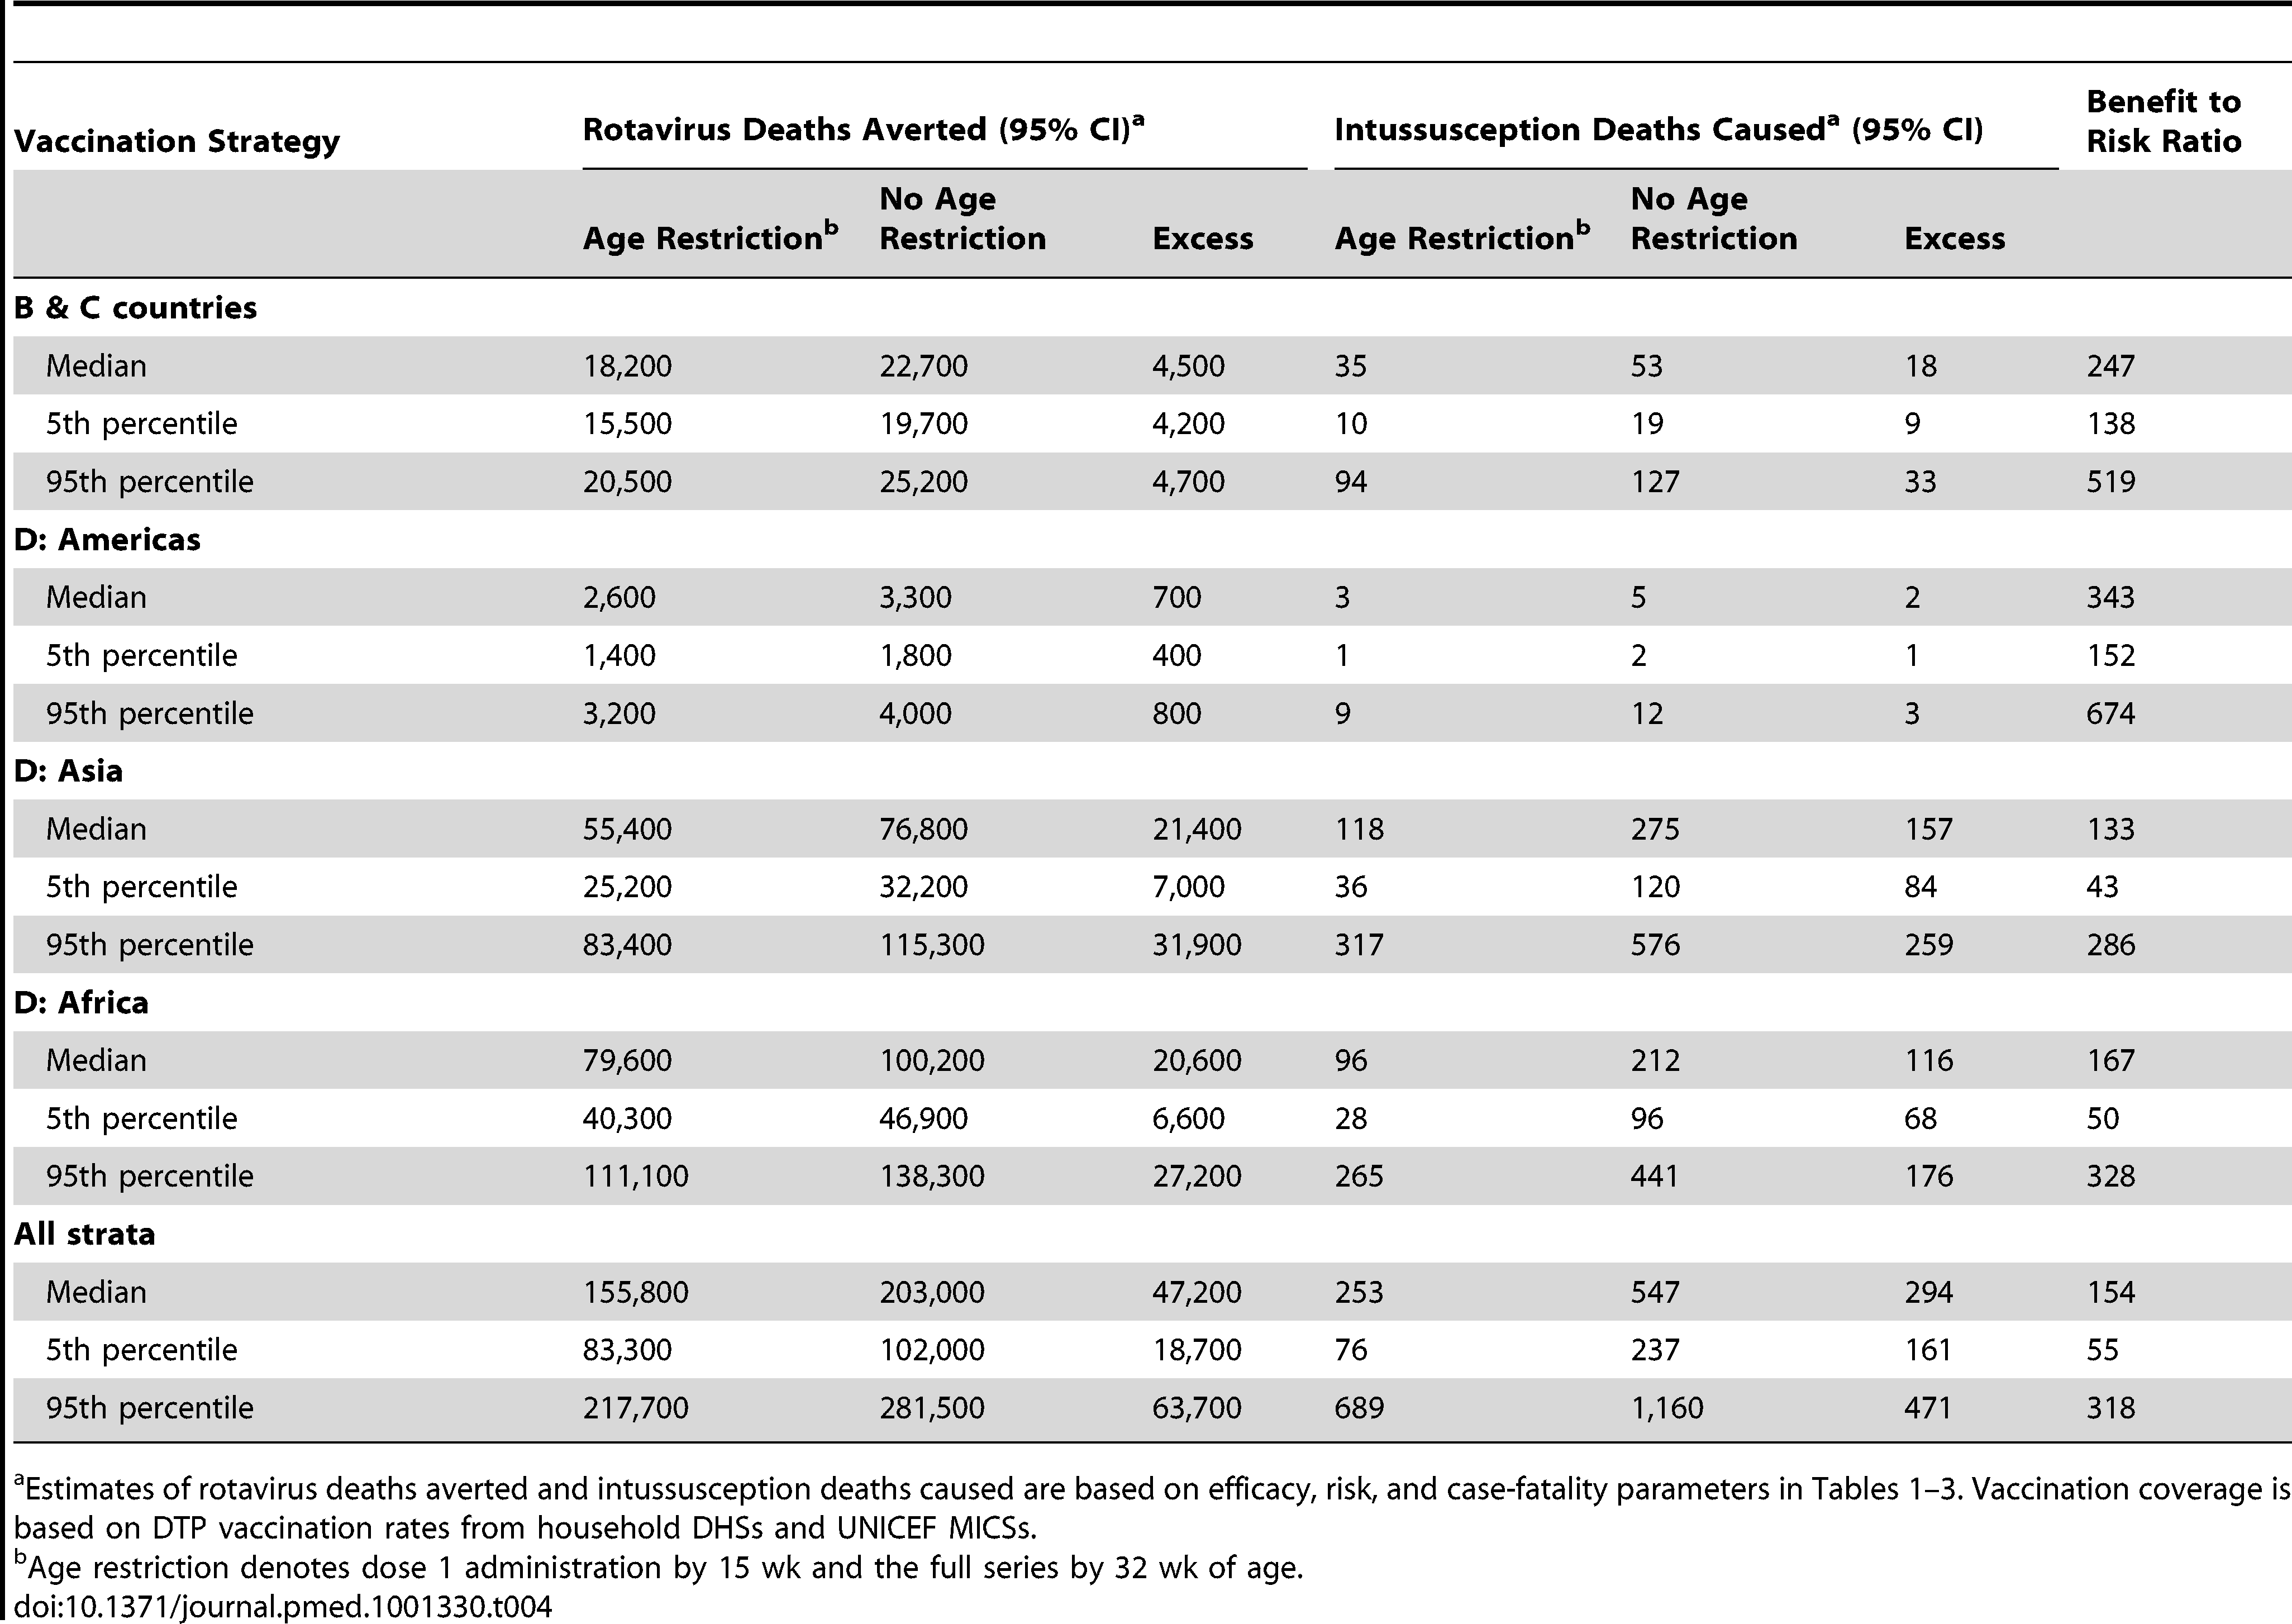 Rotavirus deaths averted versus excess intussusception deaths caused under age-restricted and age-unrestricted rotavirus vaccination strategies, by WHO mortality group and age.